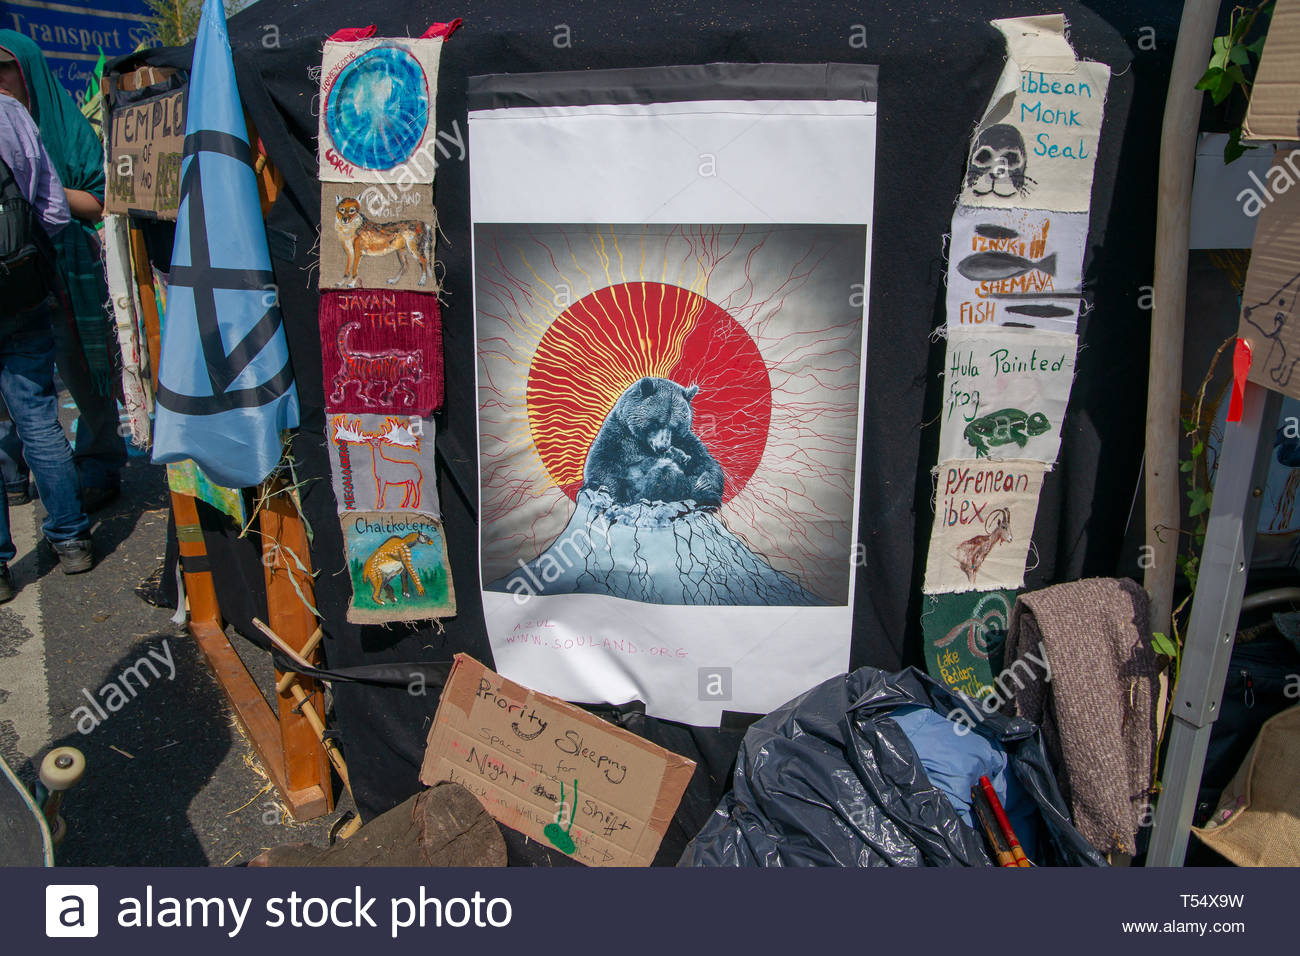 WATERLOO BRIDGE, LONDON, APRIL 19th, 2019: Artwork by Extinction Rebellion supporters expresses concern about global climate change. - Stock Image